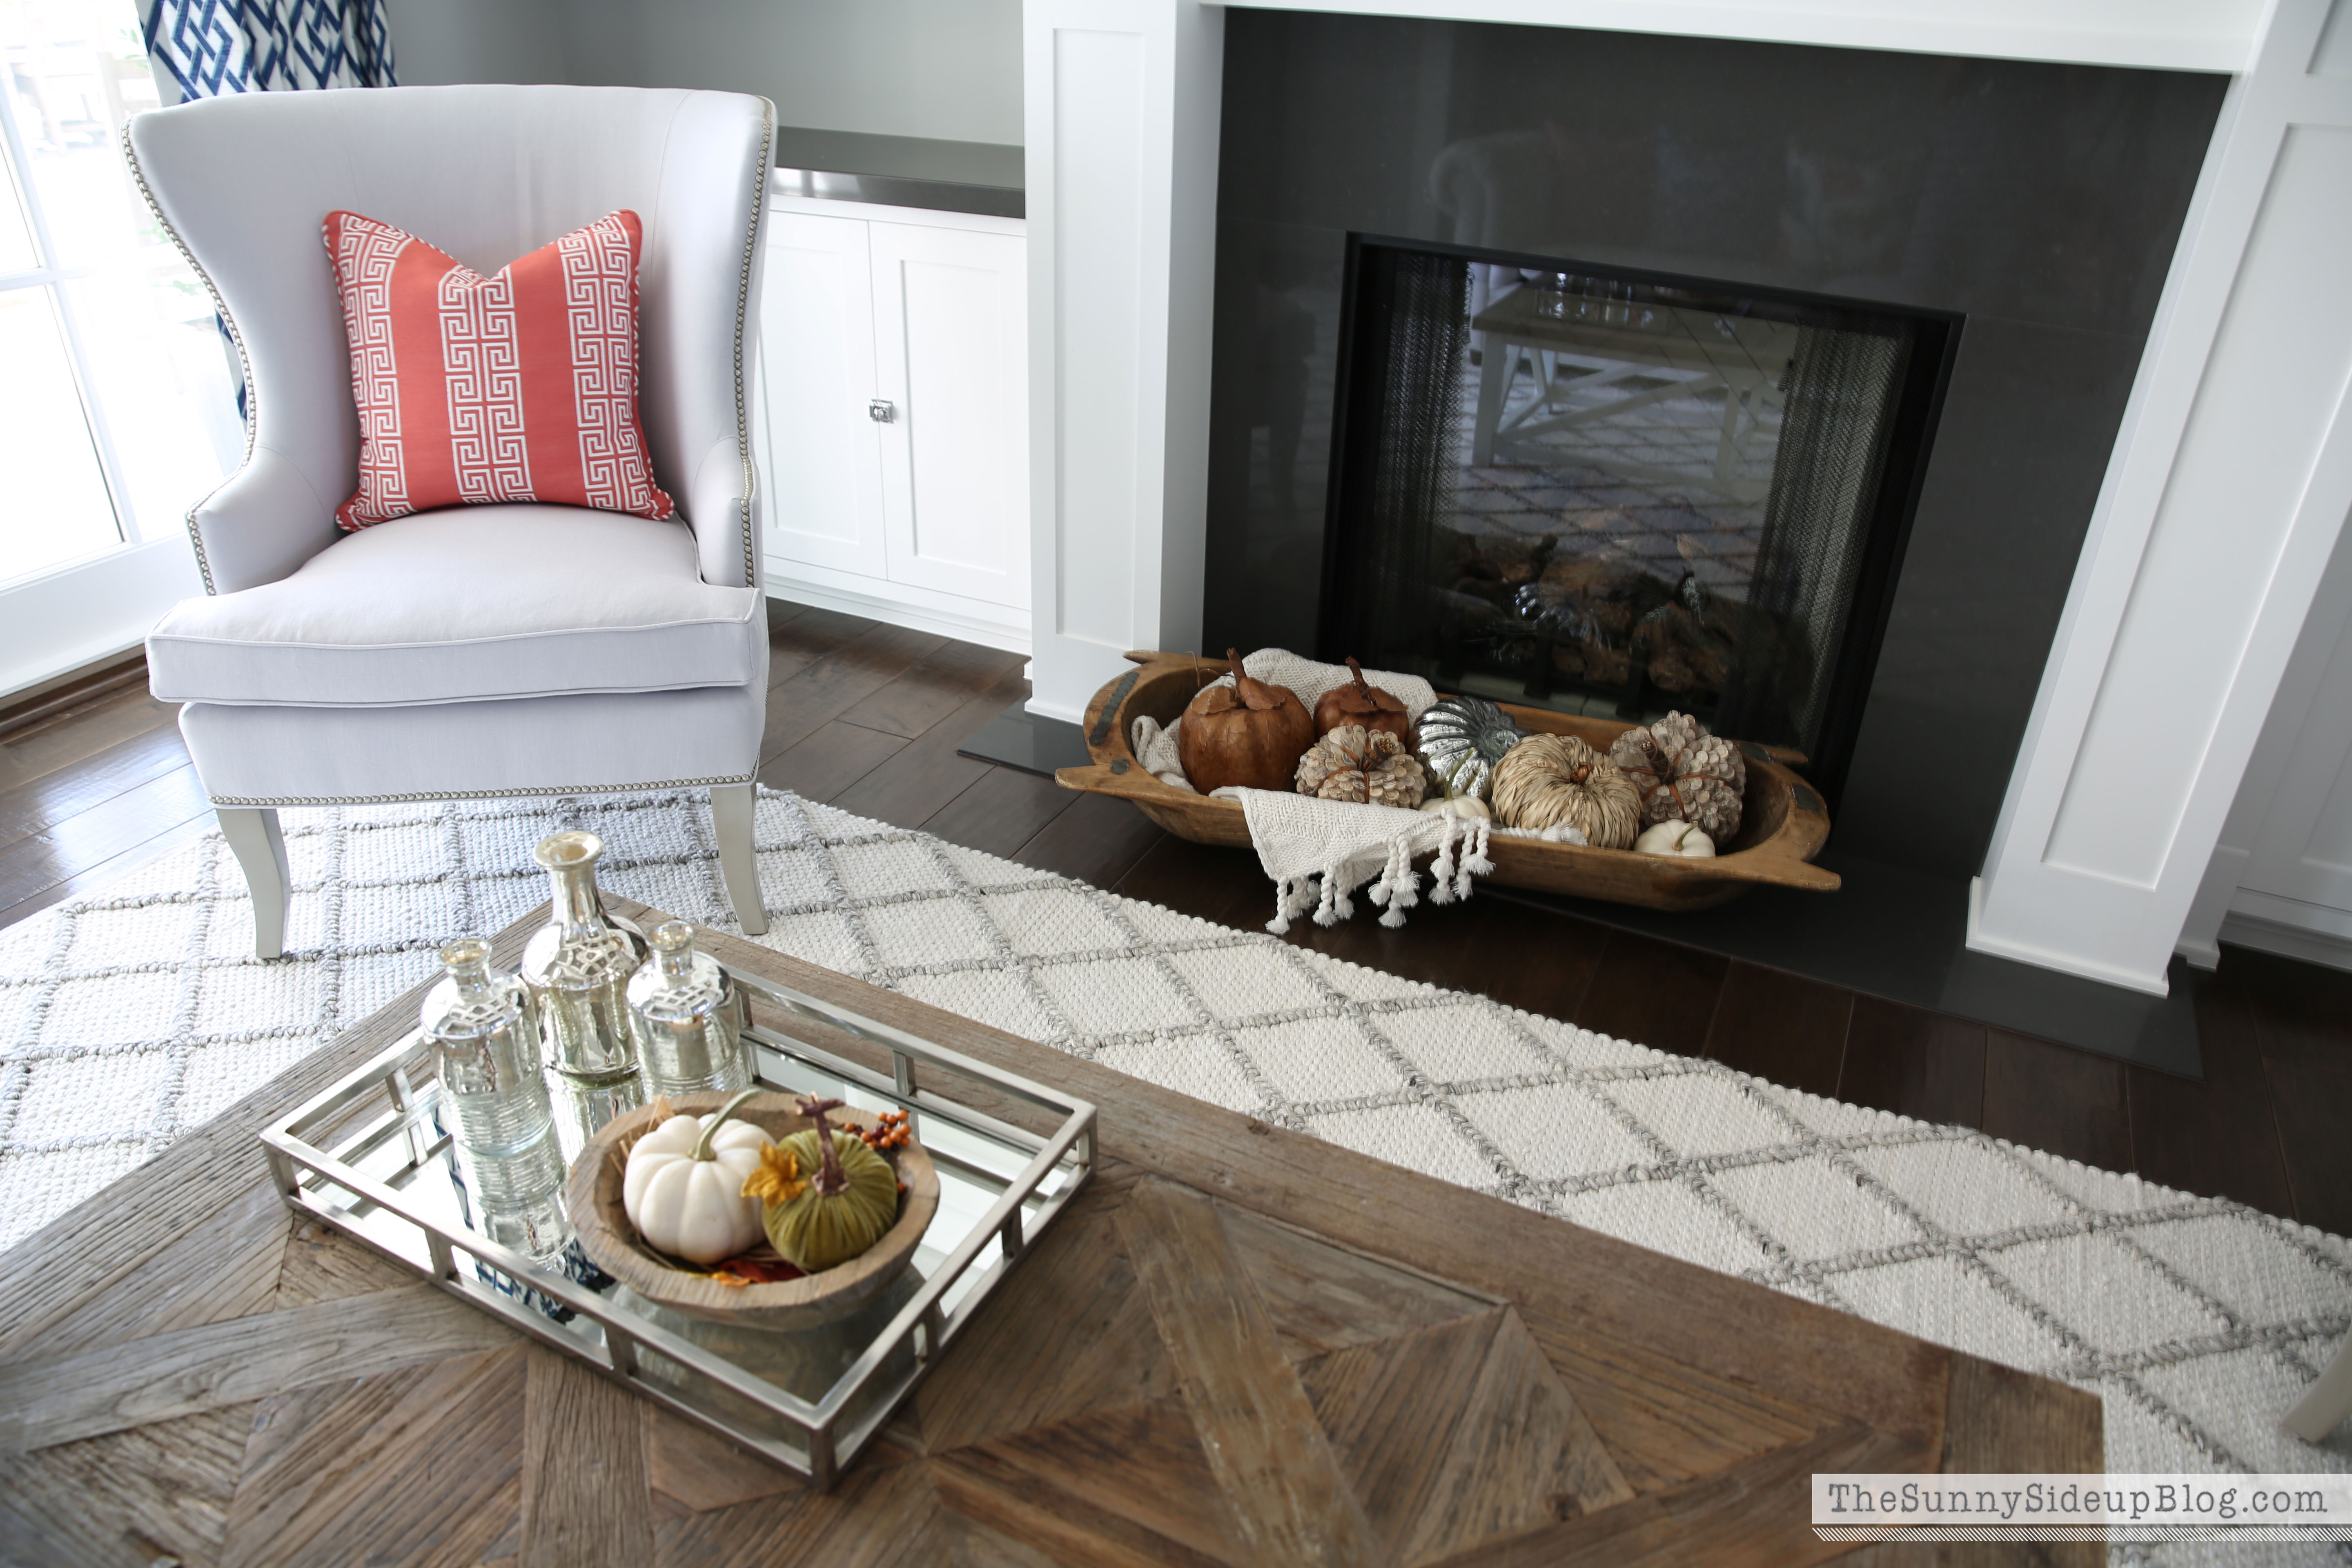 Restoration Hardware Coffee Table at Home and Interior Design Ideas